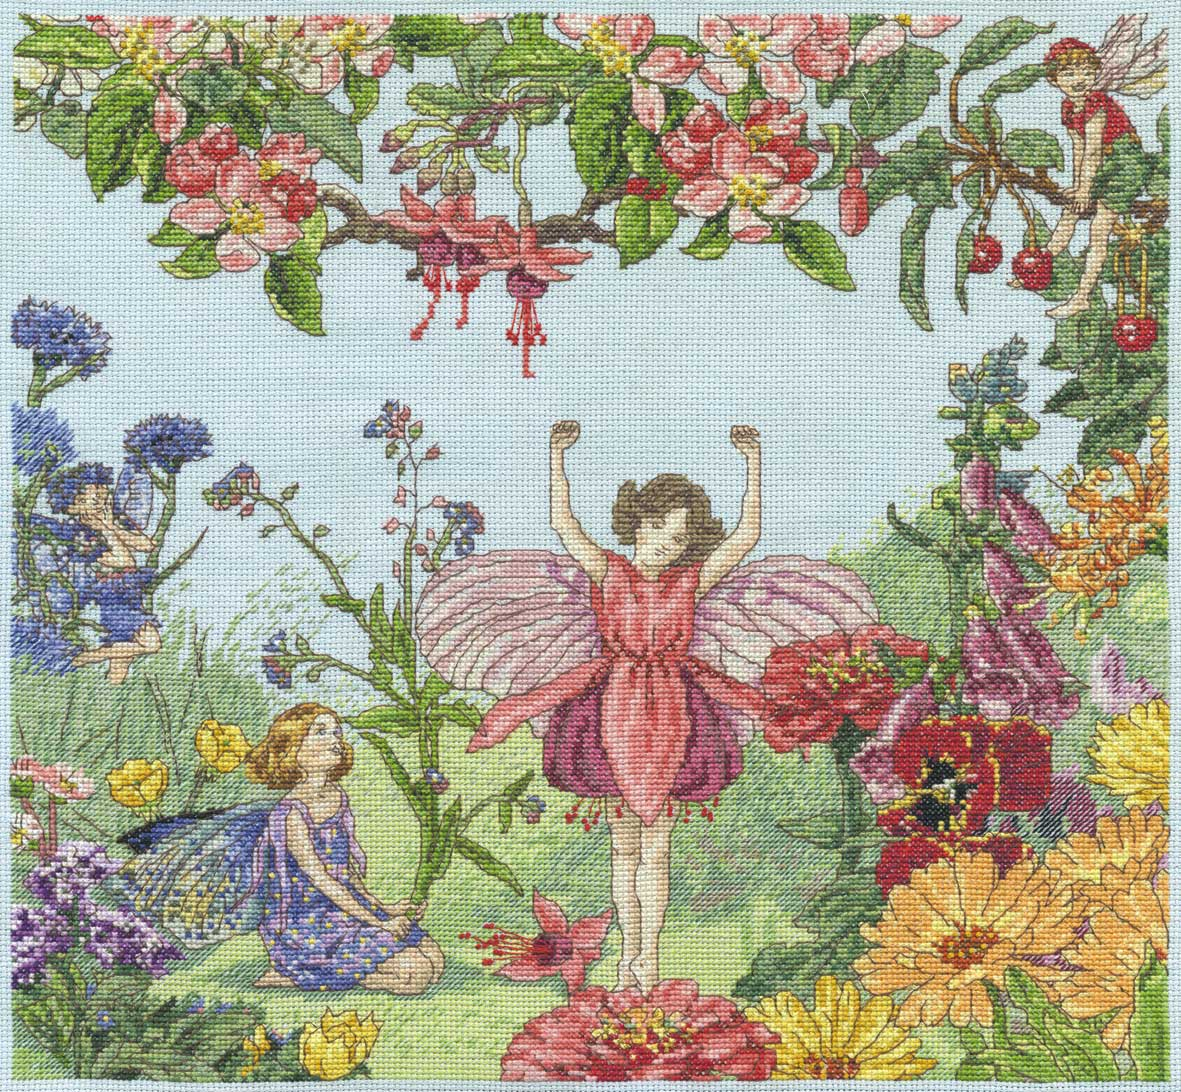 Flower Fairies Masterpiece Flower Fairies BL567 56